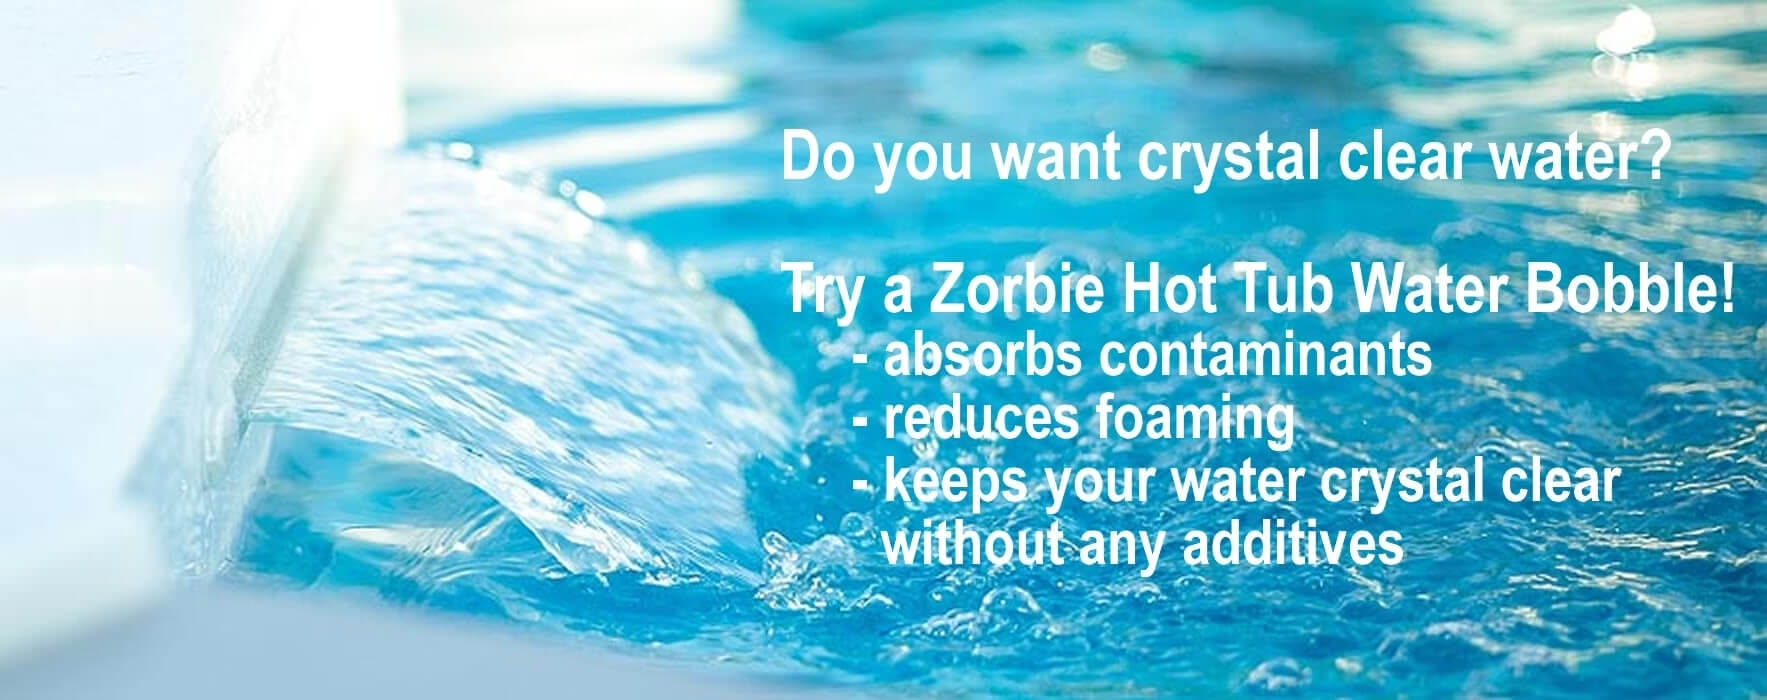 Zorbie - crystal clear water without any additives